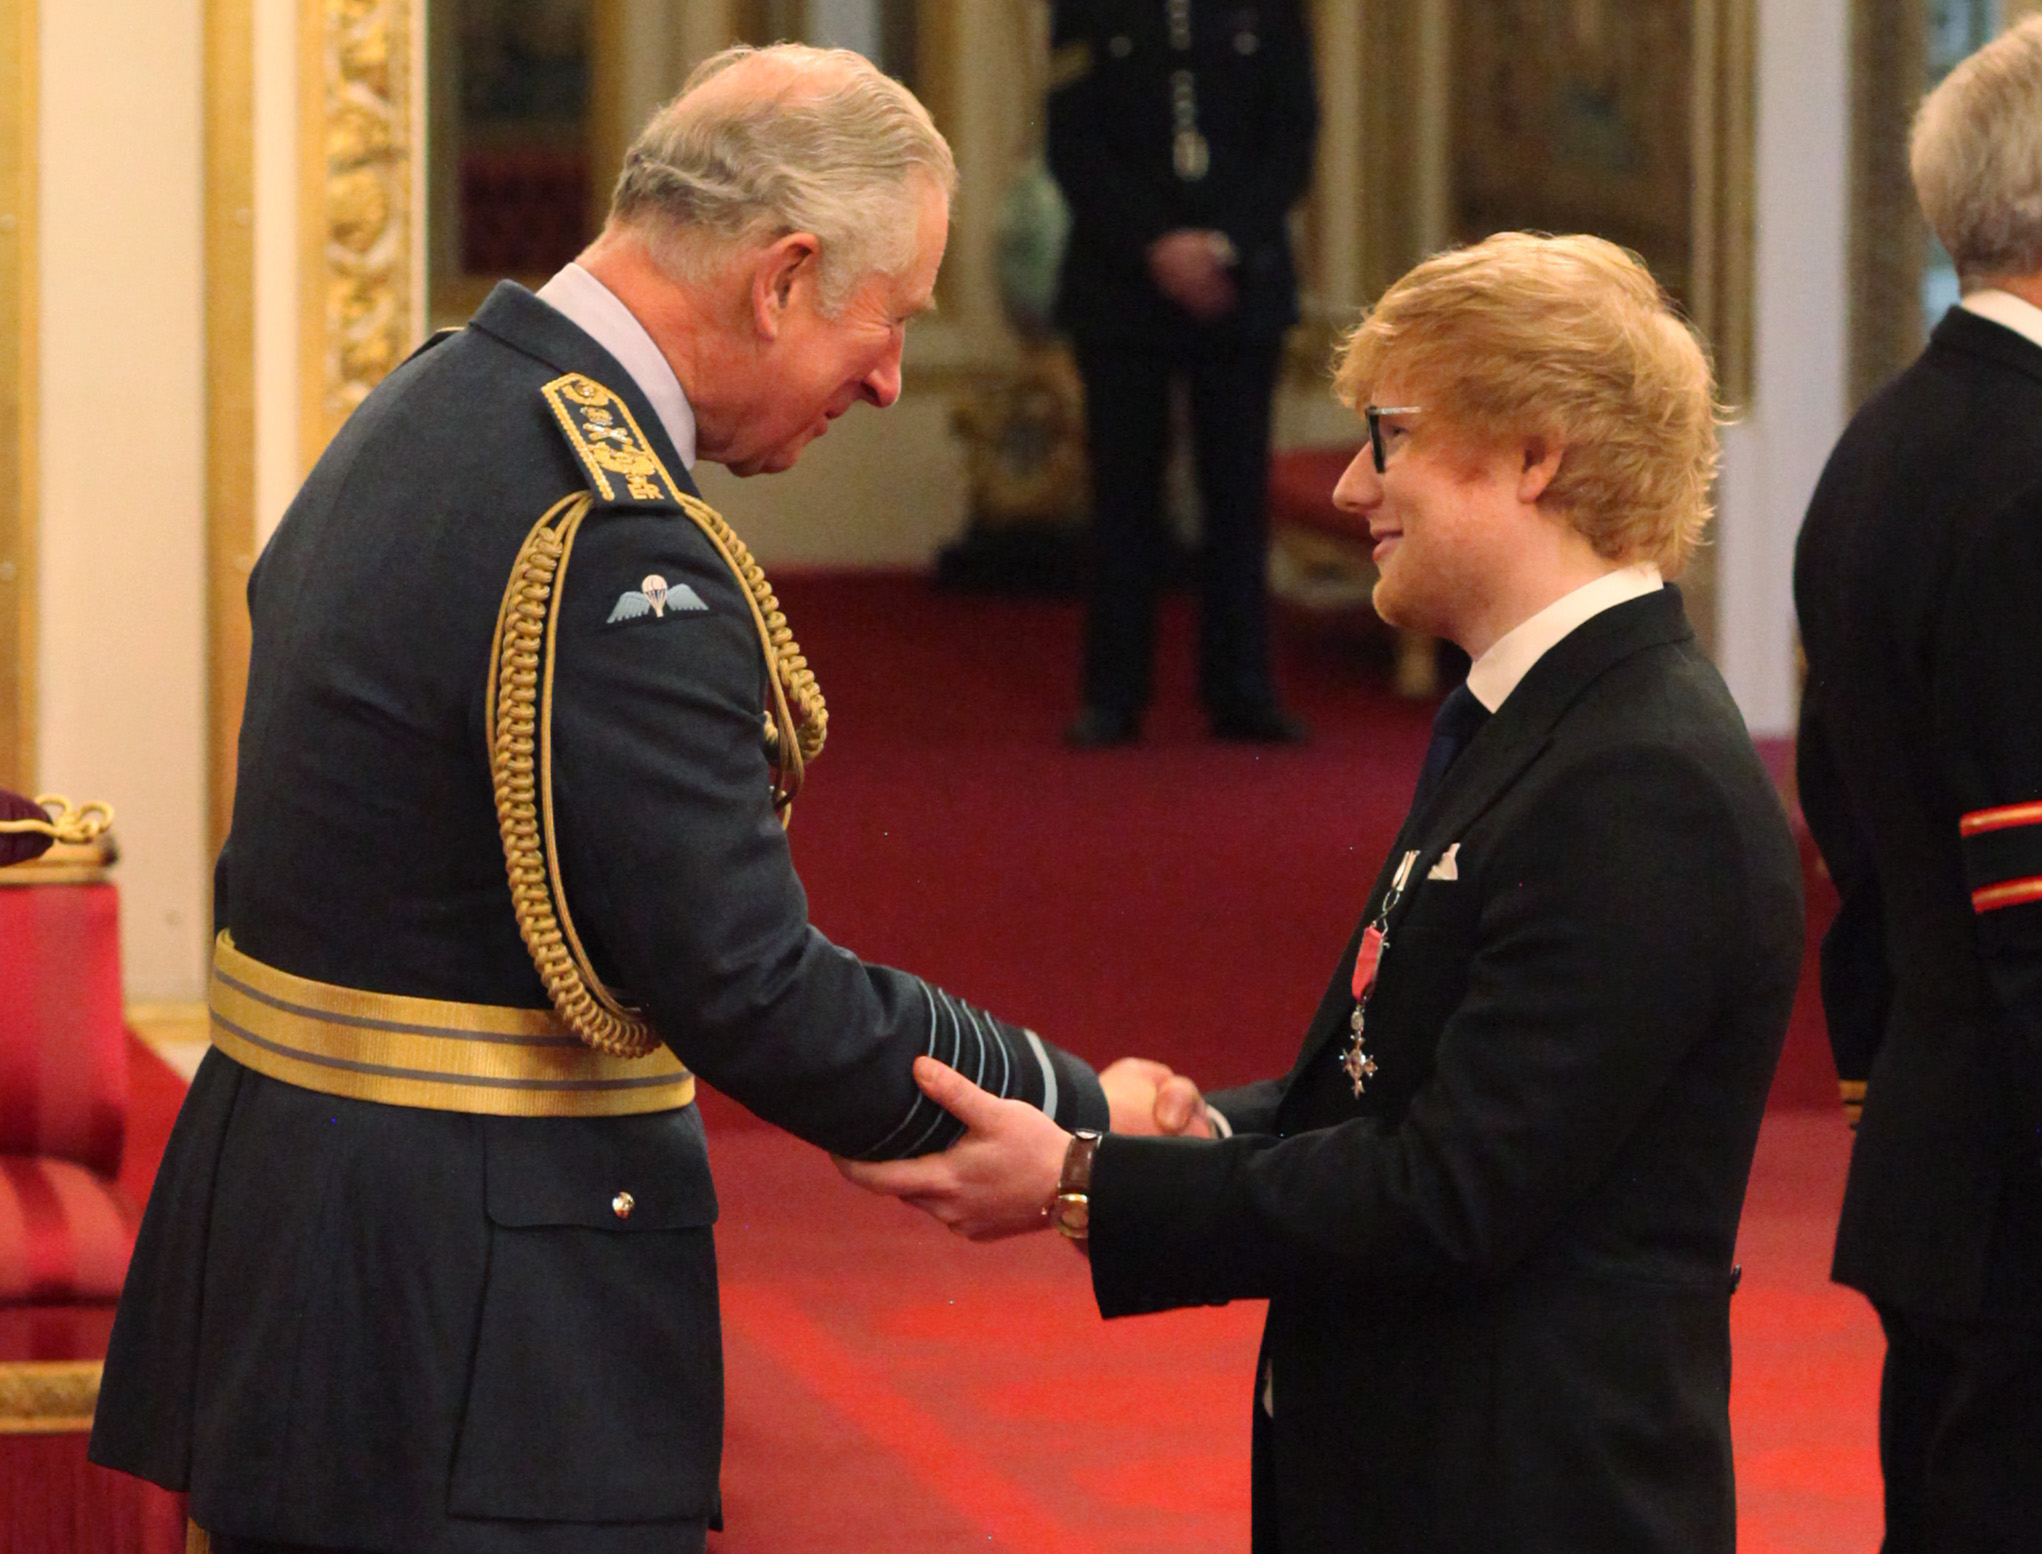 Ed Sheeran Breaches Royal Protocol While Receiving MBE PA 34041896